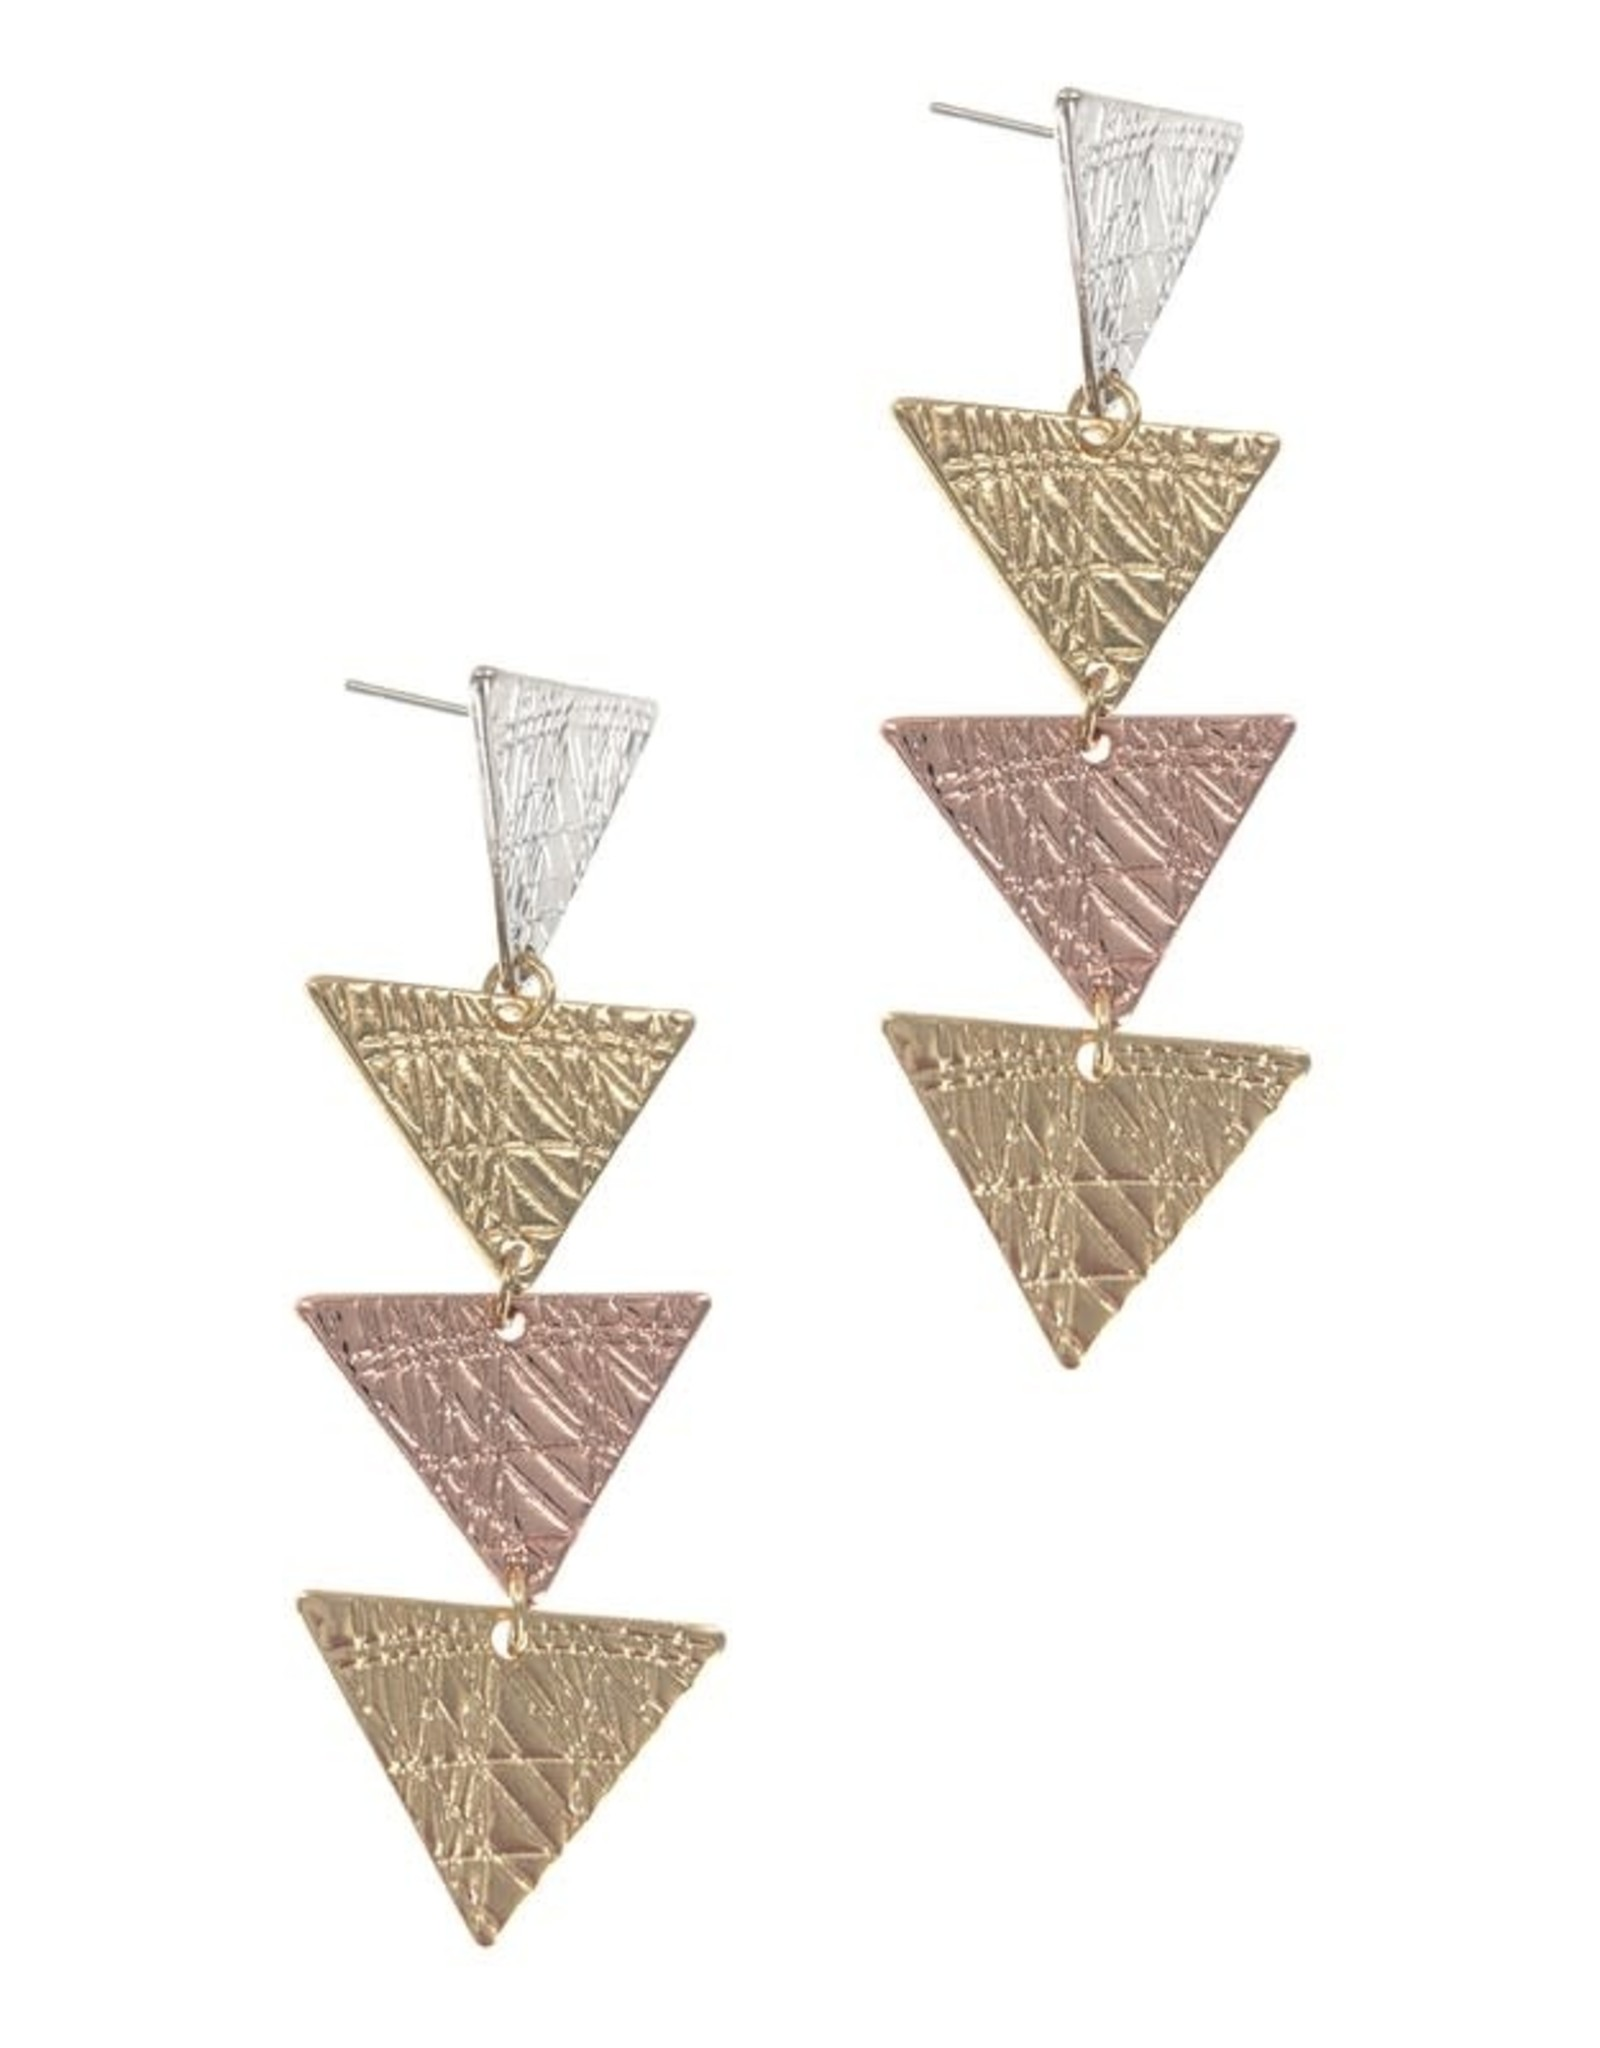 The Ritzy Gypsy HARLOW Triangle Tiered Earring